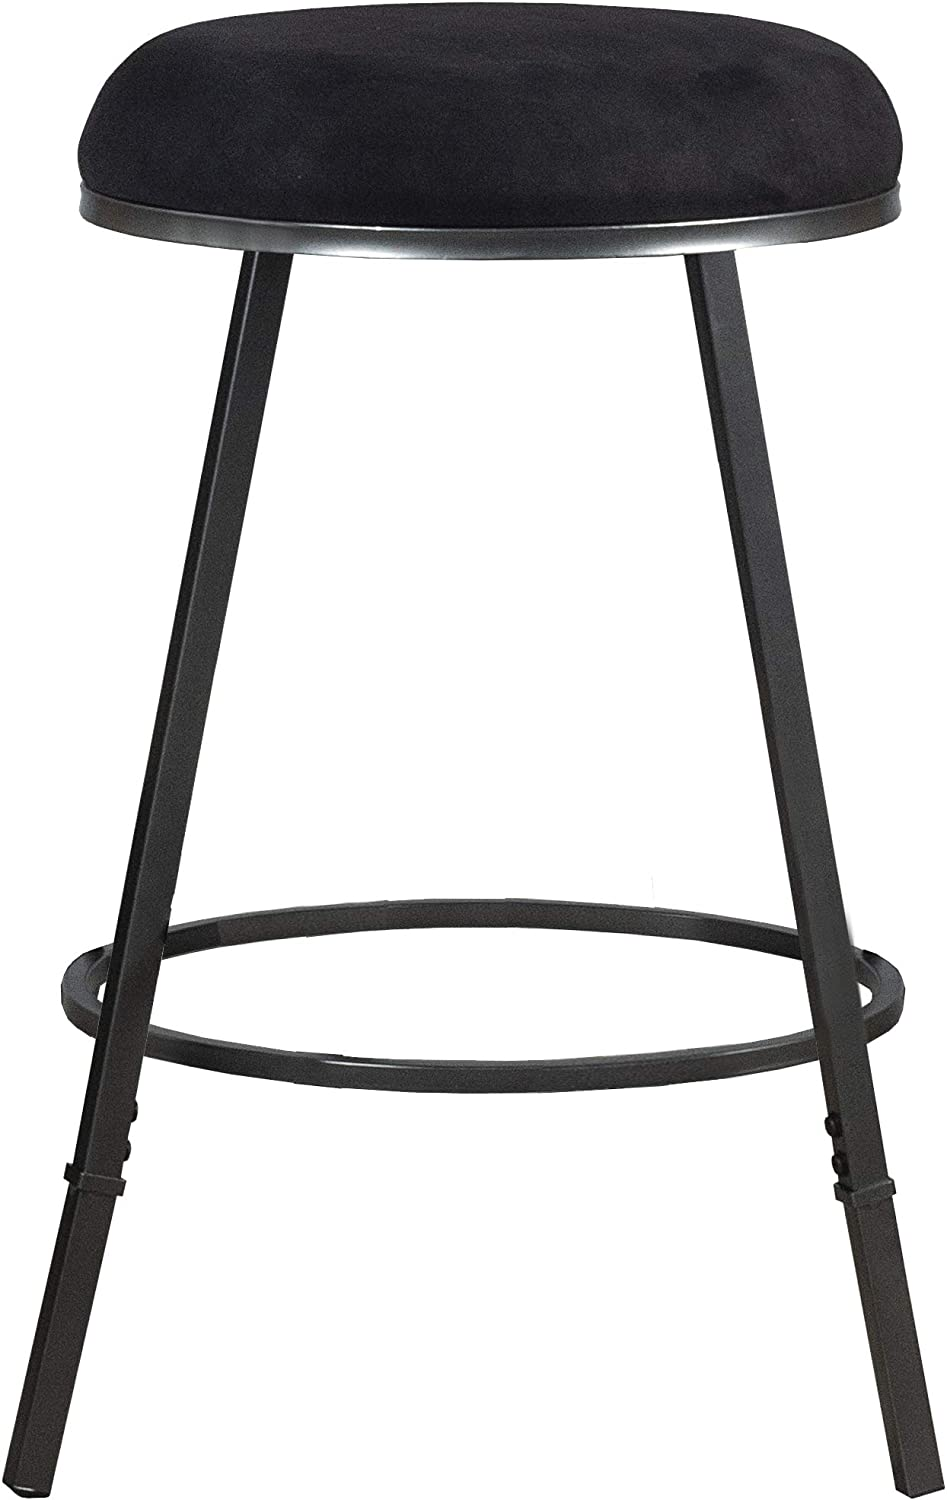 Hillsdale Furniture Sanders Adjustable Black Bar Free Shipping New Pewter New product! New type Stool